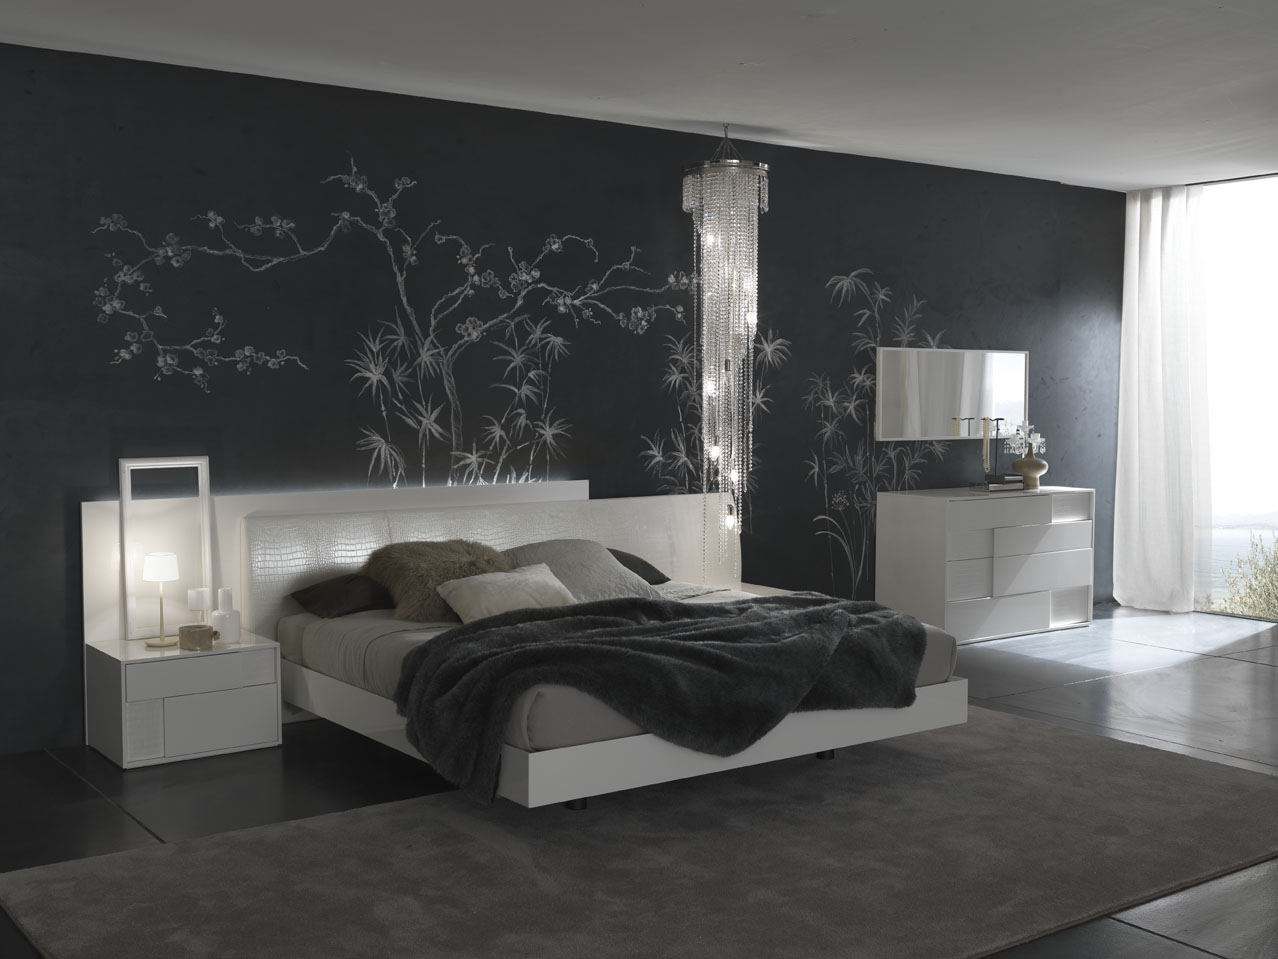 Bedroom Walls Entrancing With Black and White Bedroom Wall Art Pictures